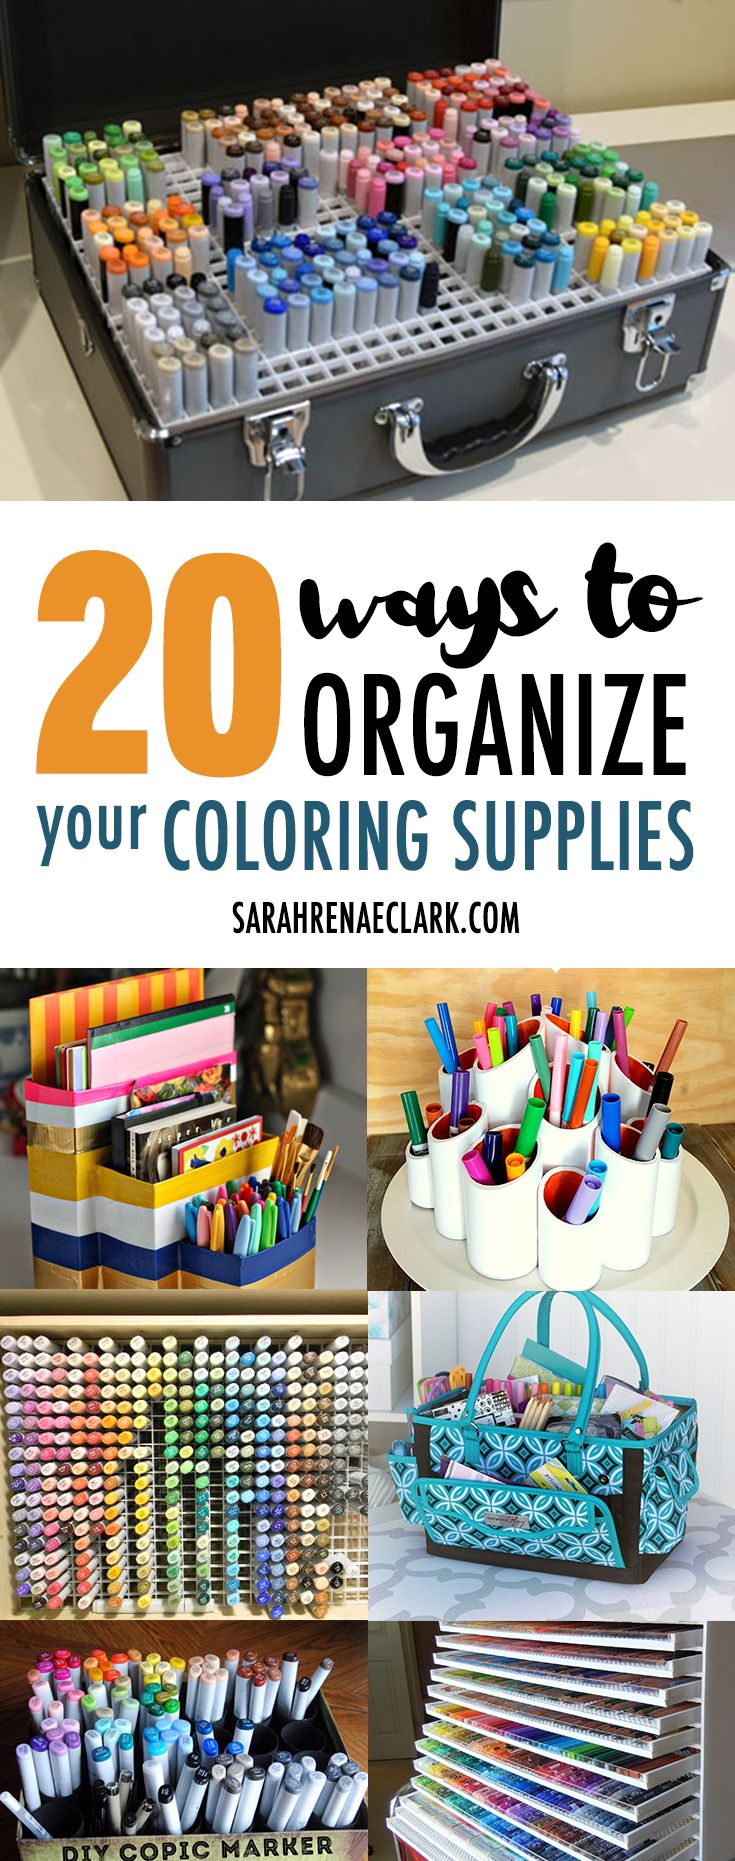 '20 Clever Ways to Organize Your Coloring Supplies...!' (via Sarah Renae Clark - Coloring Book Artist and Designer)